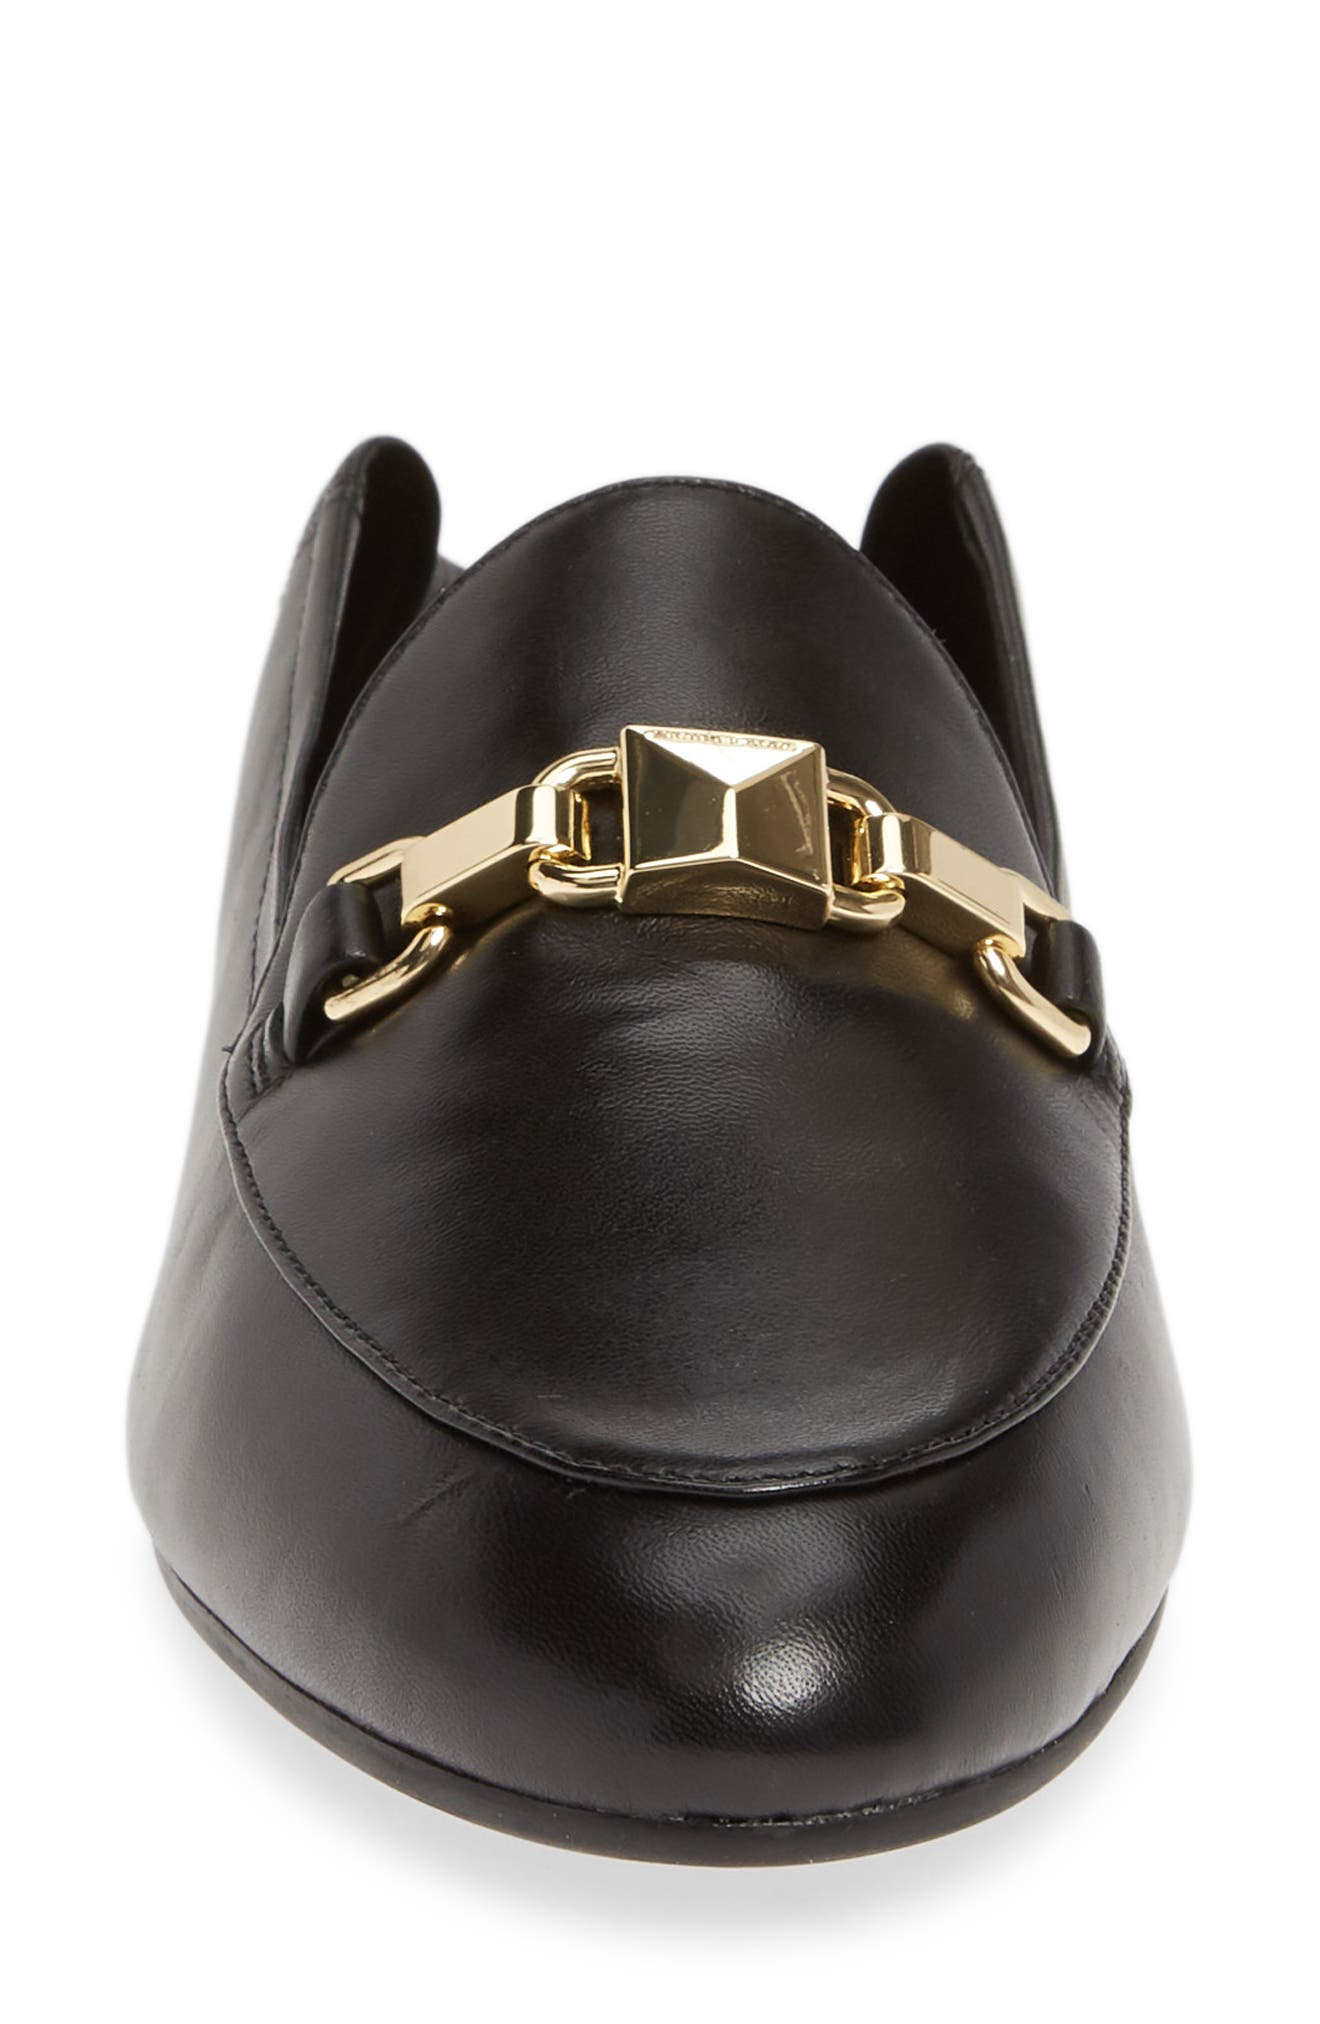 MICHAEL MICHAEL KORS, Charlton Convertible Loafer, Alternate thumbnail 5, color, BLACK NAPPA LEATHER